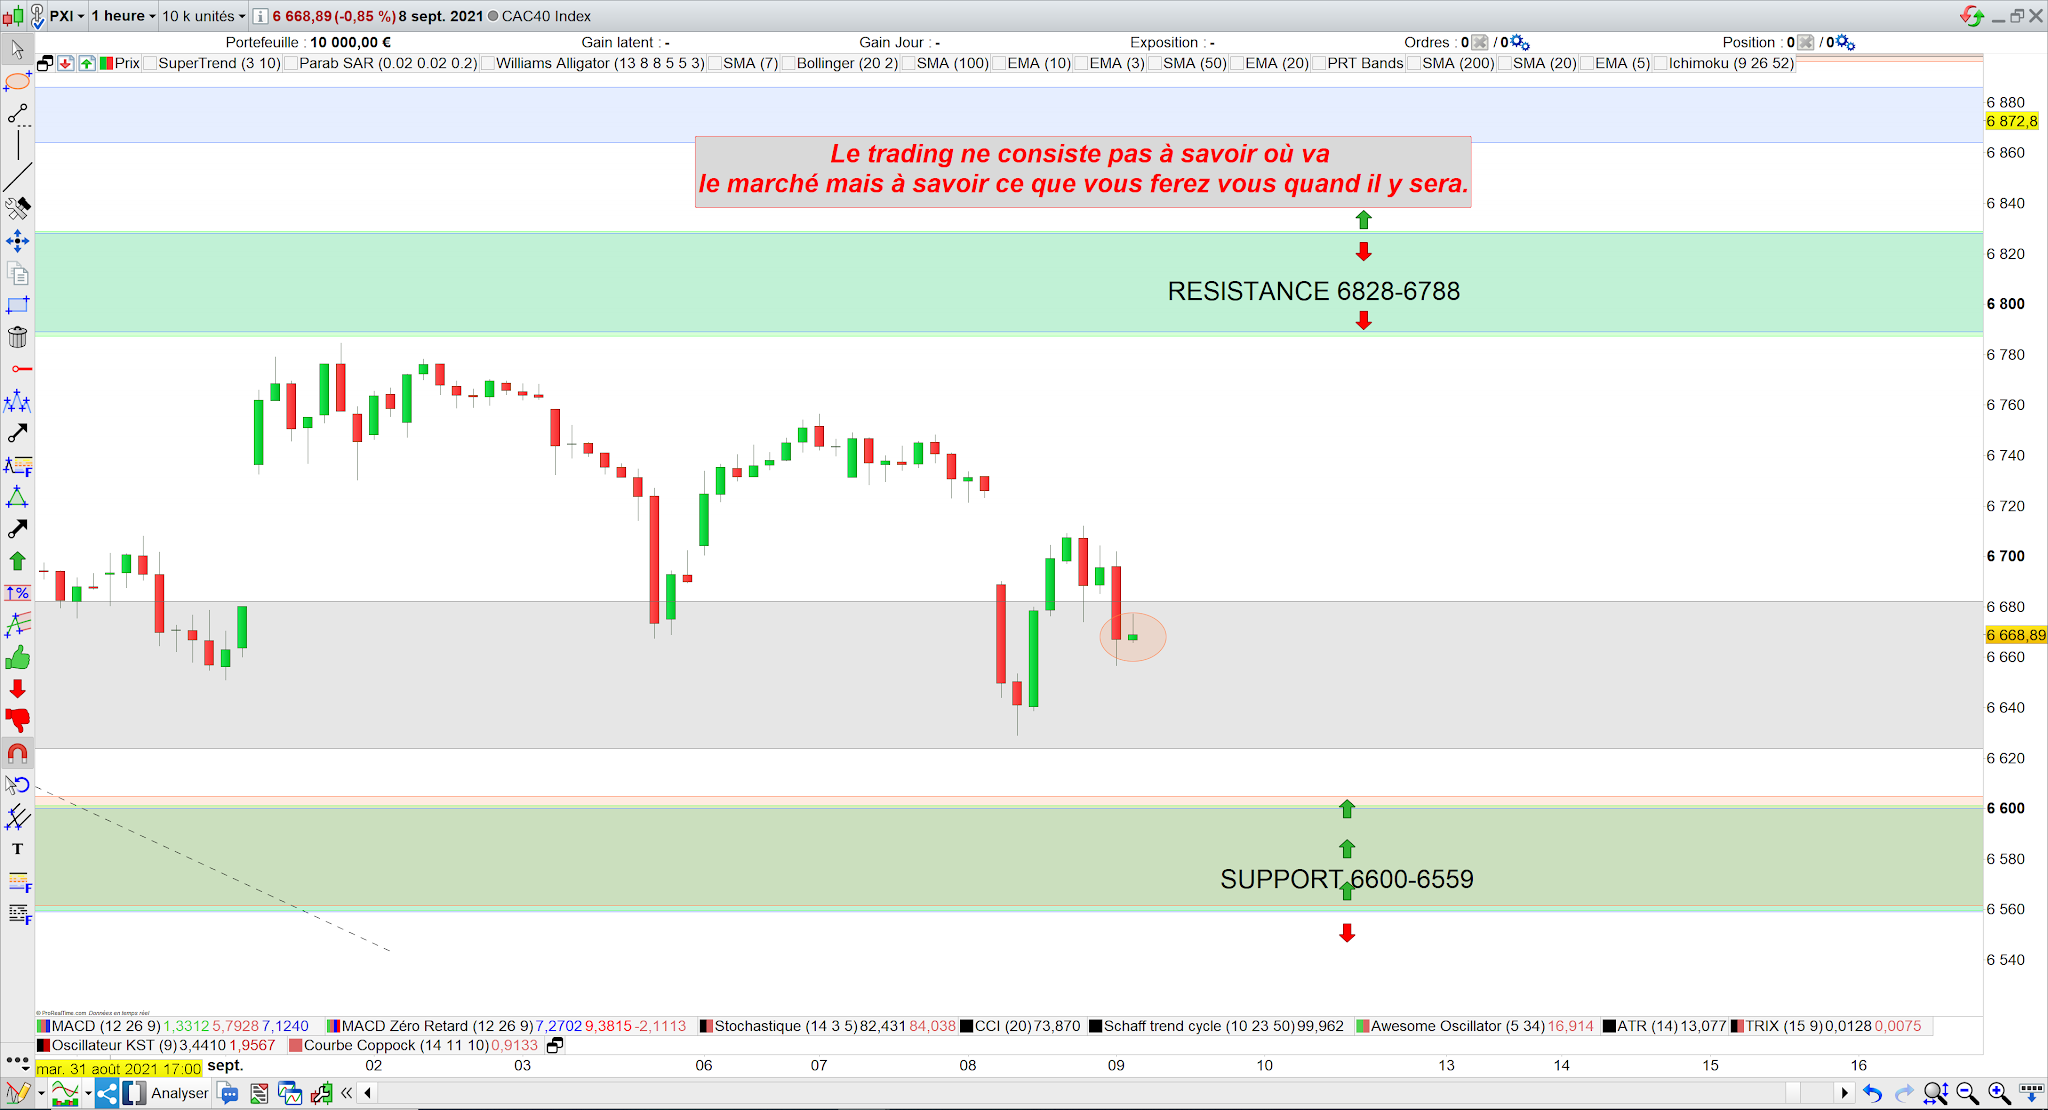 Trading cac40 09/09/21